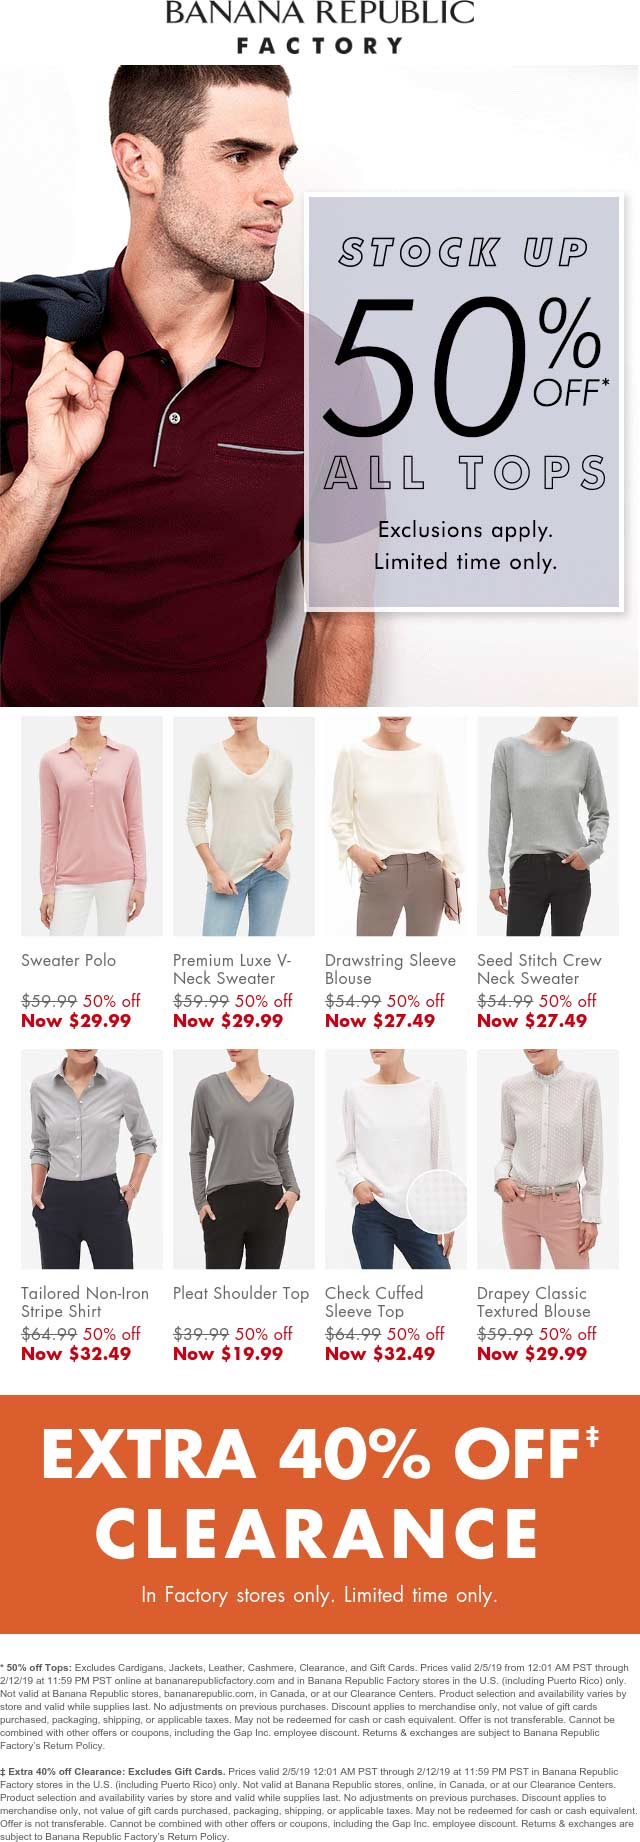 Banana Republic Factory coupons & promo code for [January 2021]